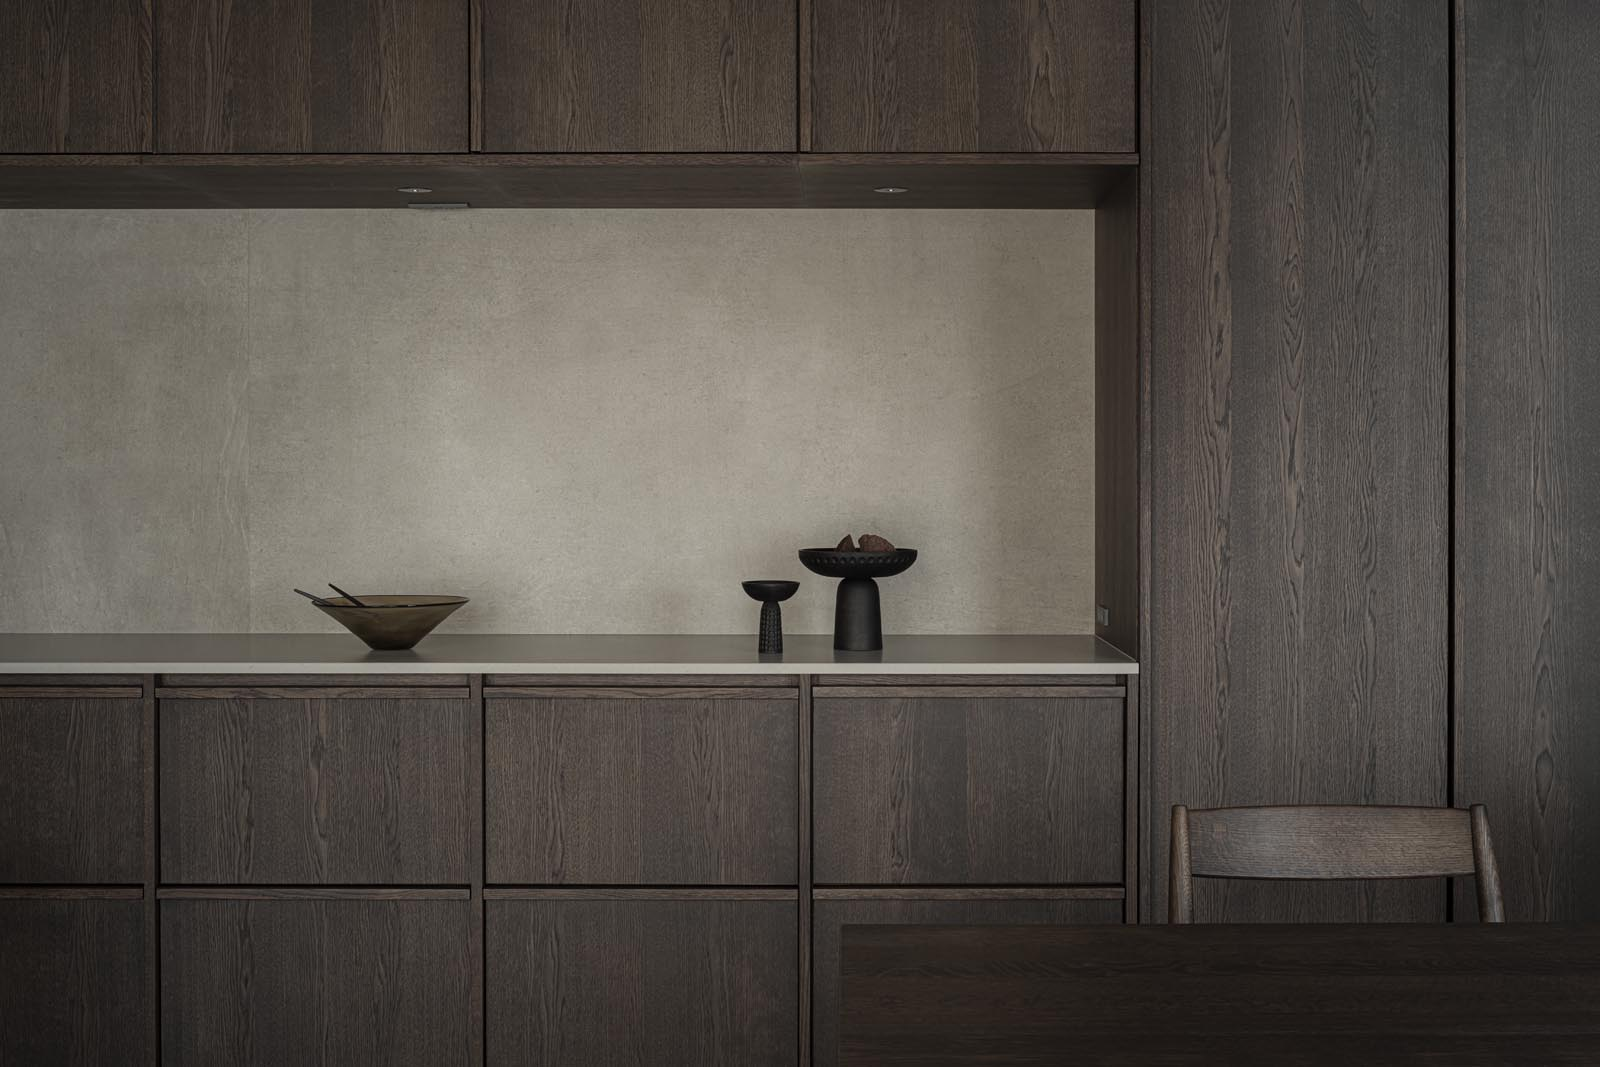 Japandi kitchen in dark wood and pale stone | Home tour - soft minimalism & earthy tones in Tokyo | These Four Walls blog